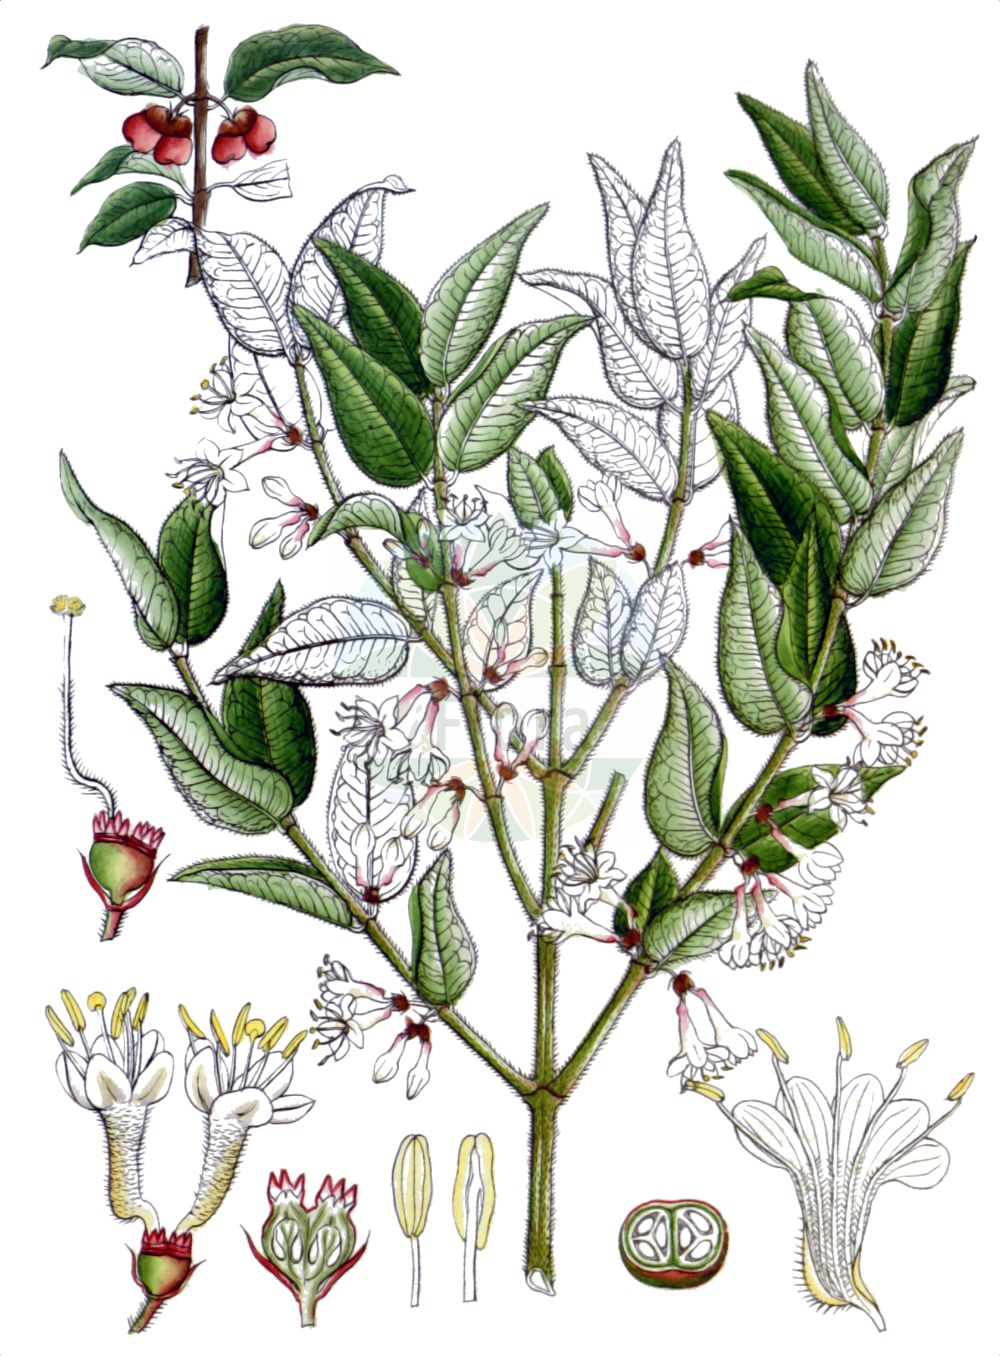 Historische Abbildung von Lonicera nitida. Das Bild zeigt Blatt, Bluete, Frucht und Same. ---- Historical Drawing of Lonicera nitida.The image is showing leaf, flower, fruit and seed.(Lonicera nitida,Lonicera nitida,Lonicera,Heckenkirsche,Honeysuckle,Caprifoliaceae,Geissblattgewaechse,Honeysuckle family,Blatt,Bluete,Frucht,Same,leaf,flower,fruit,seed,Wight (1840-1850))